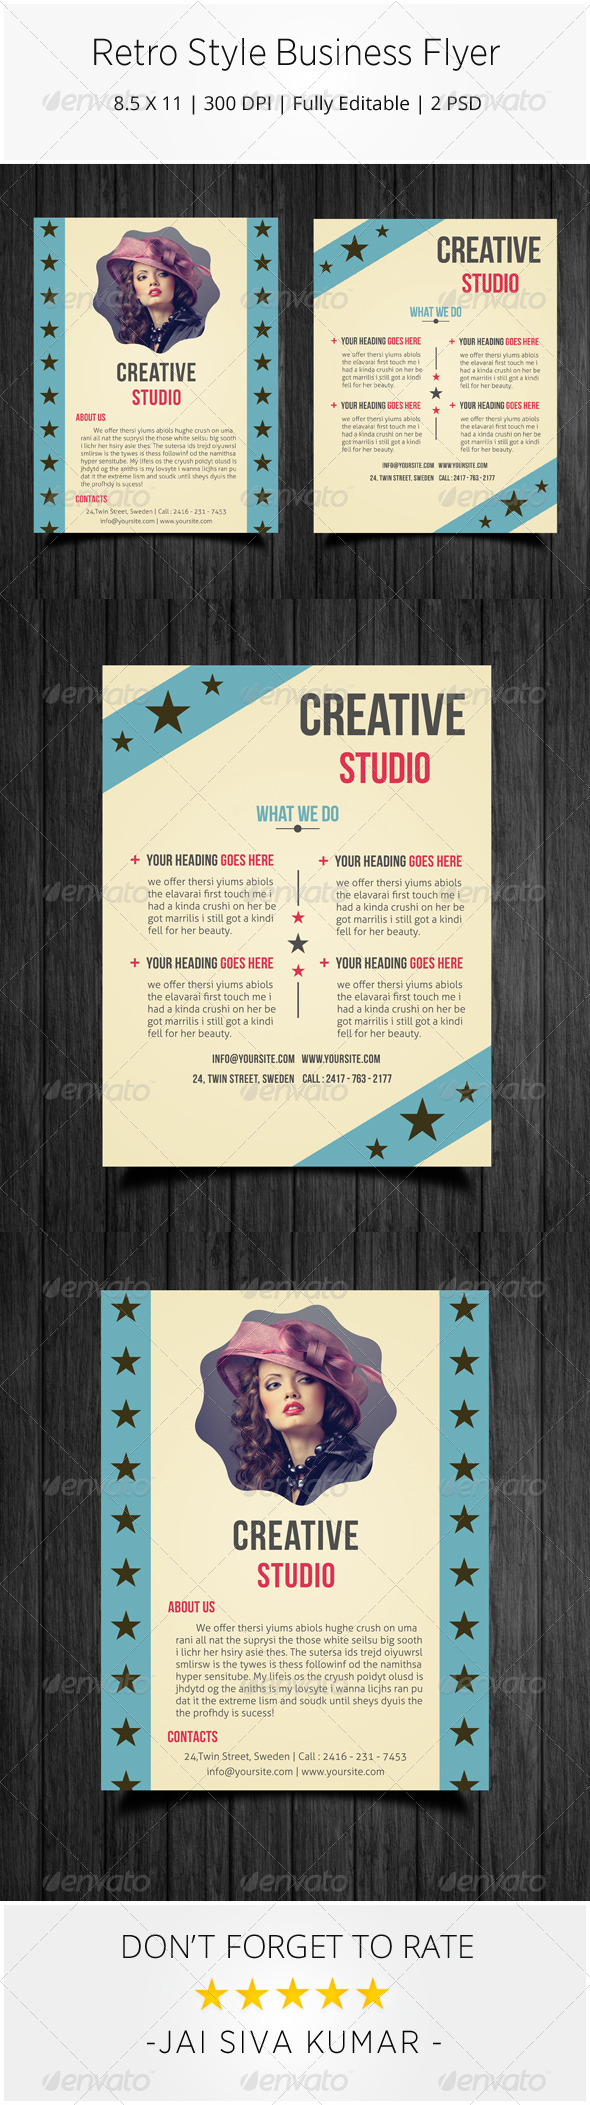 GraphicRiver Retro Style Business Flyer 7294685